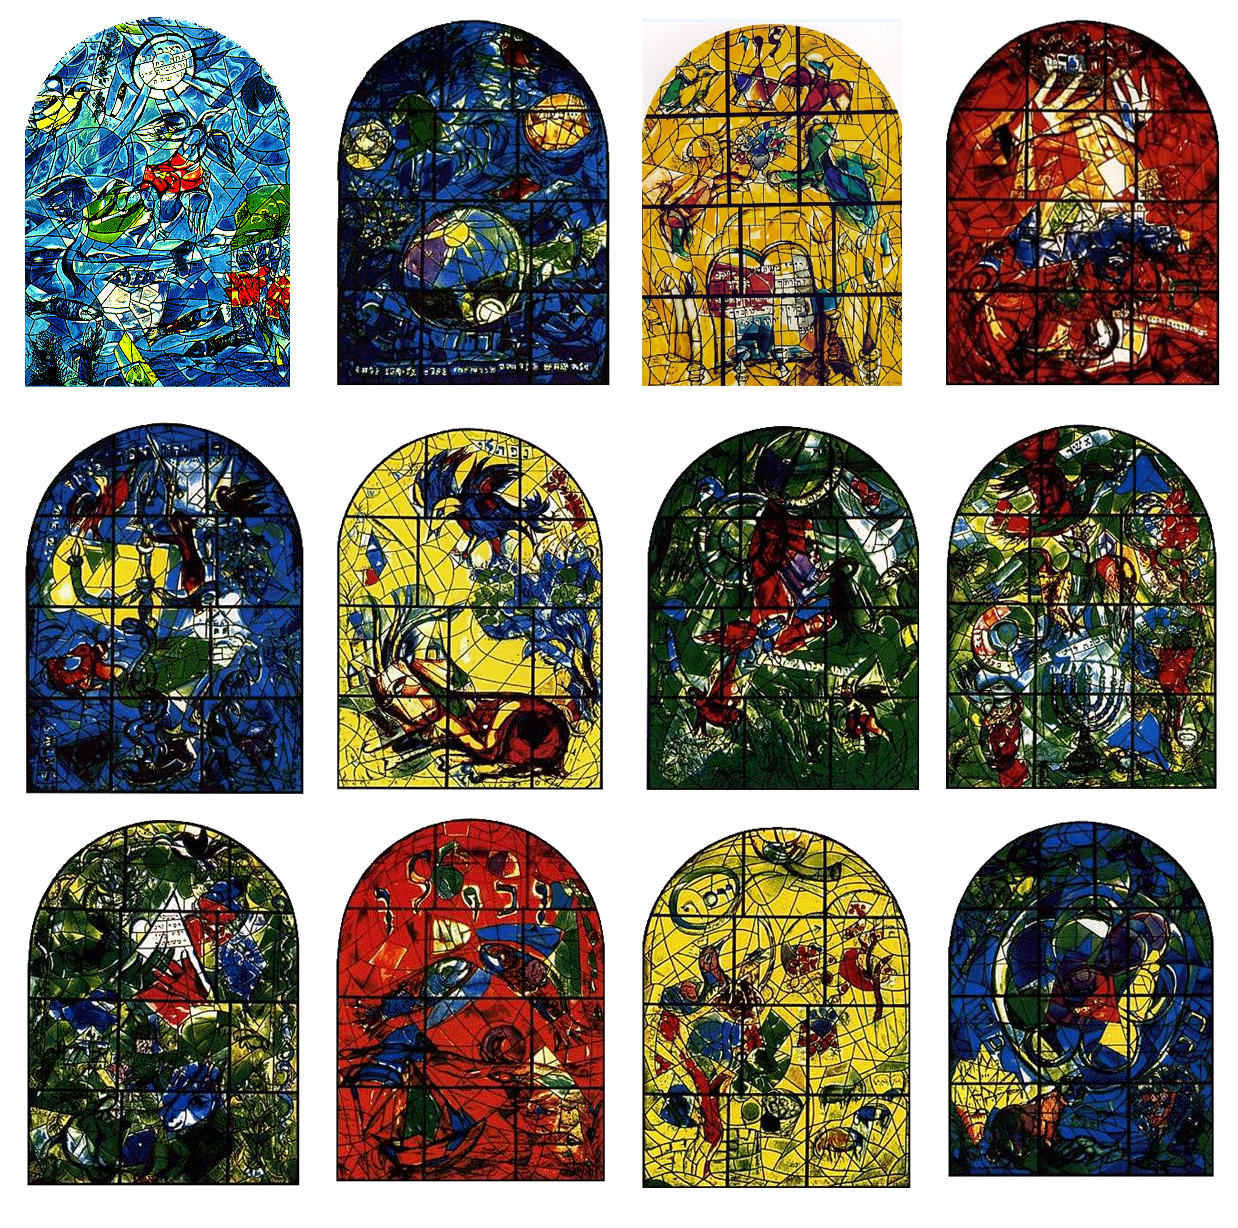 Designs for 12 Stained Glass Windows in Jerusalem ©marc chagall art